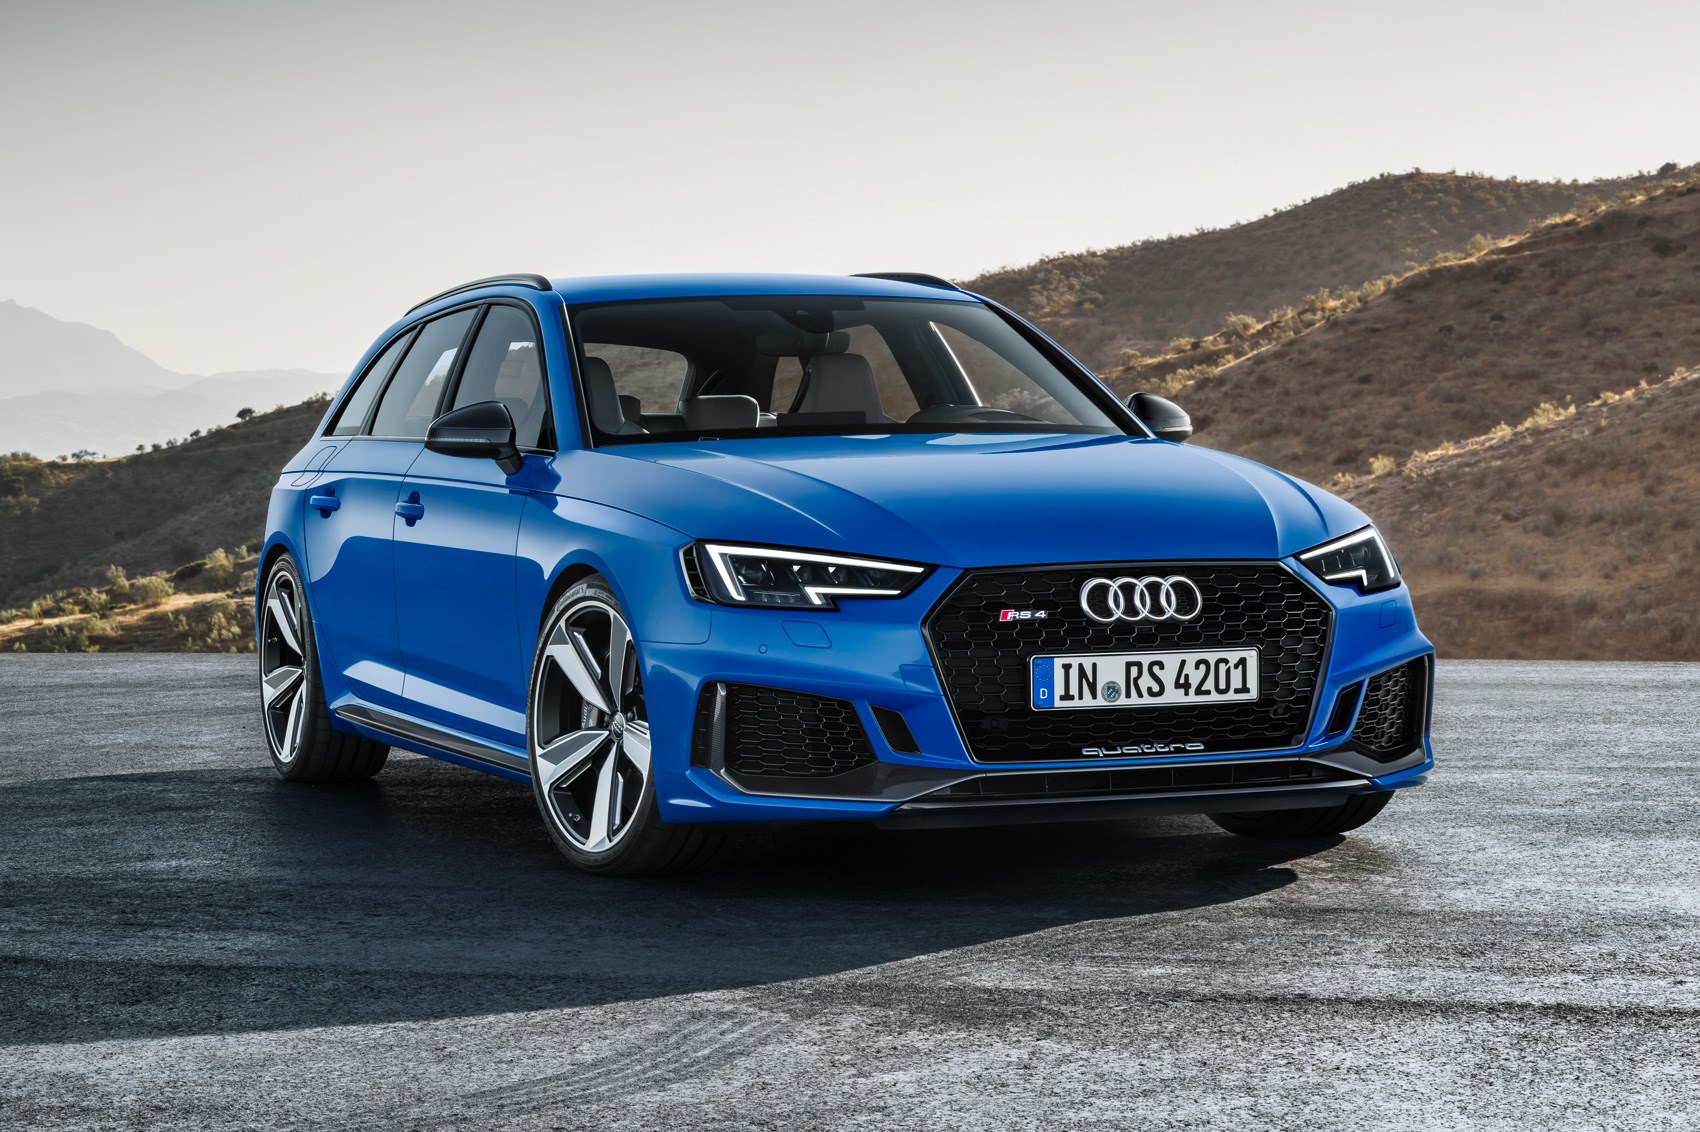 Volvo Q4 >> New (e)state of mind: Audi pulls covers off new RS4 Avant by CAR Magazine